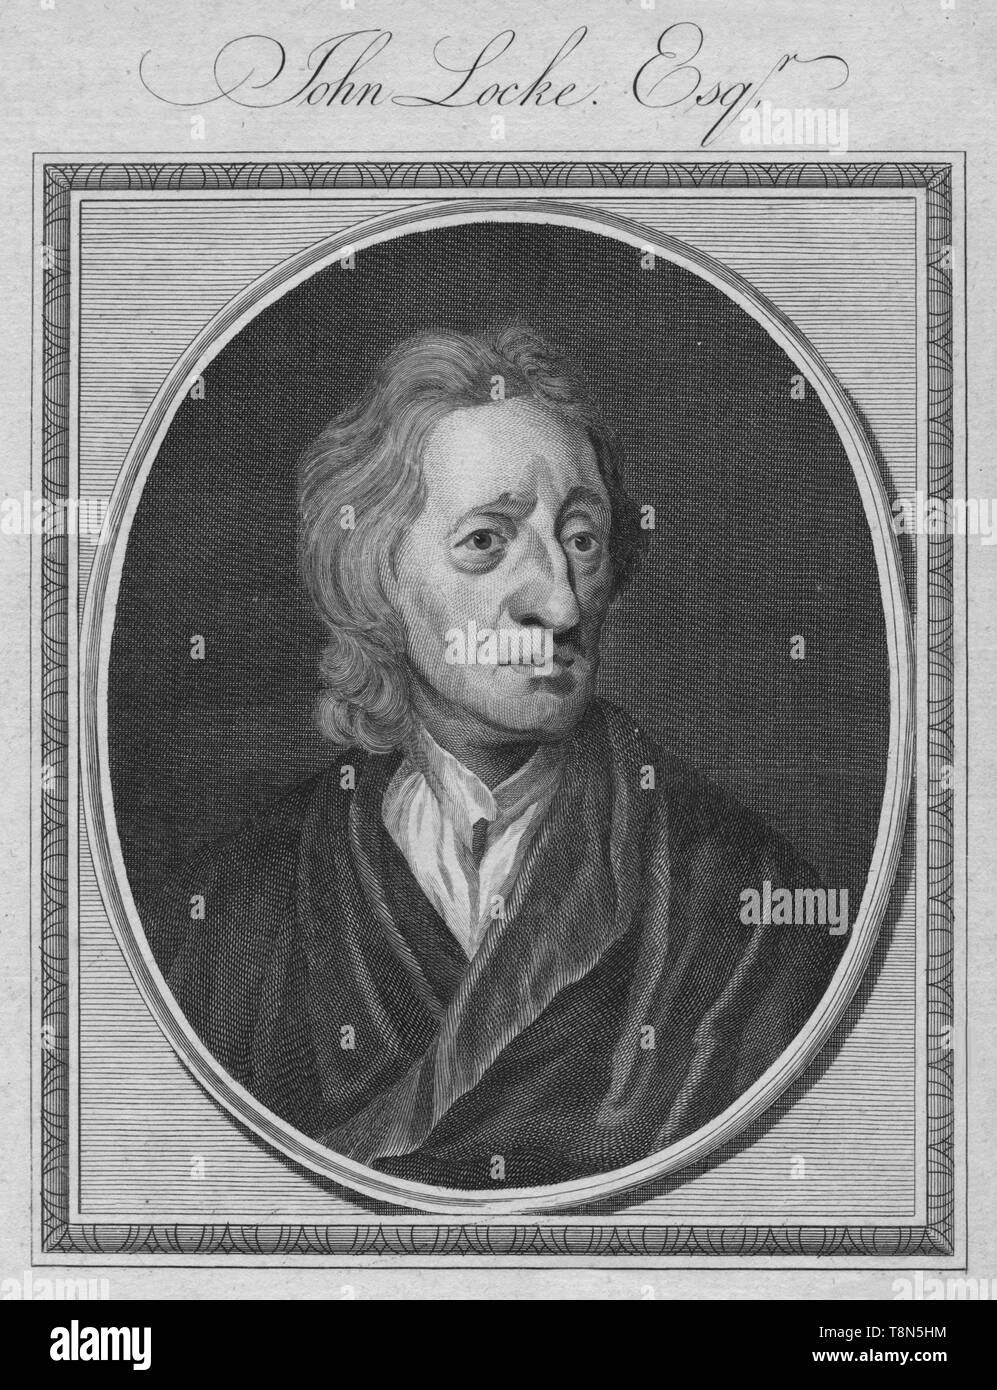 "'John Locke. Esq', 1786.John Locke (1632-1704), English philosopher, physician and Enlightenment thinker important to social contract theory and considered to be as the ""Father of Liberalism.  From ""The History of England"" by Paul de Rapin-Thoyras. [Harrison, London, England] - Stock Image"